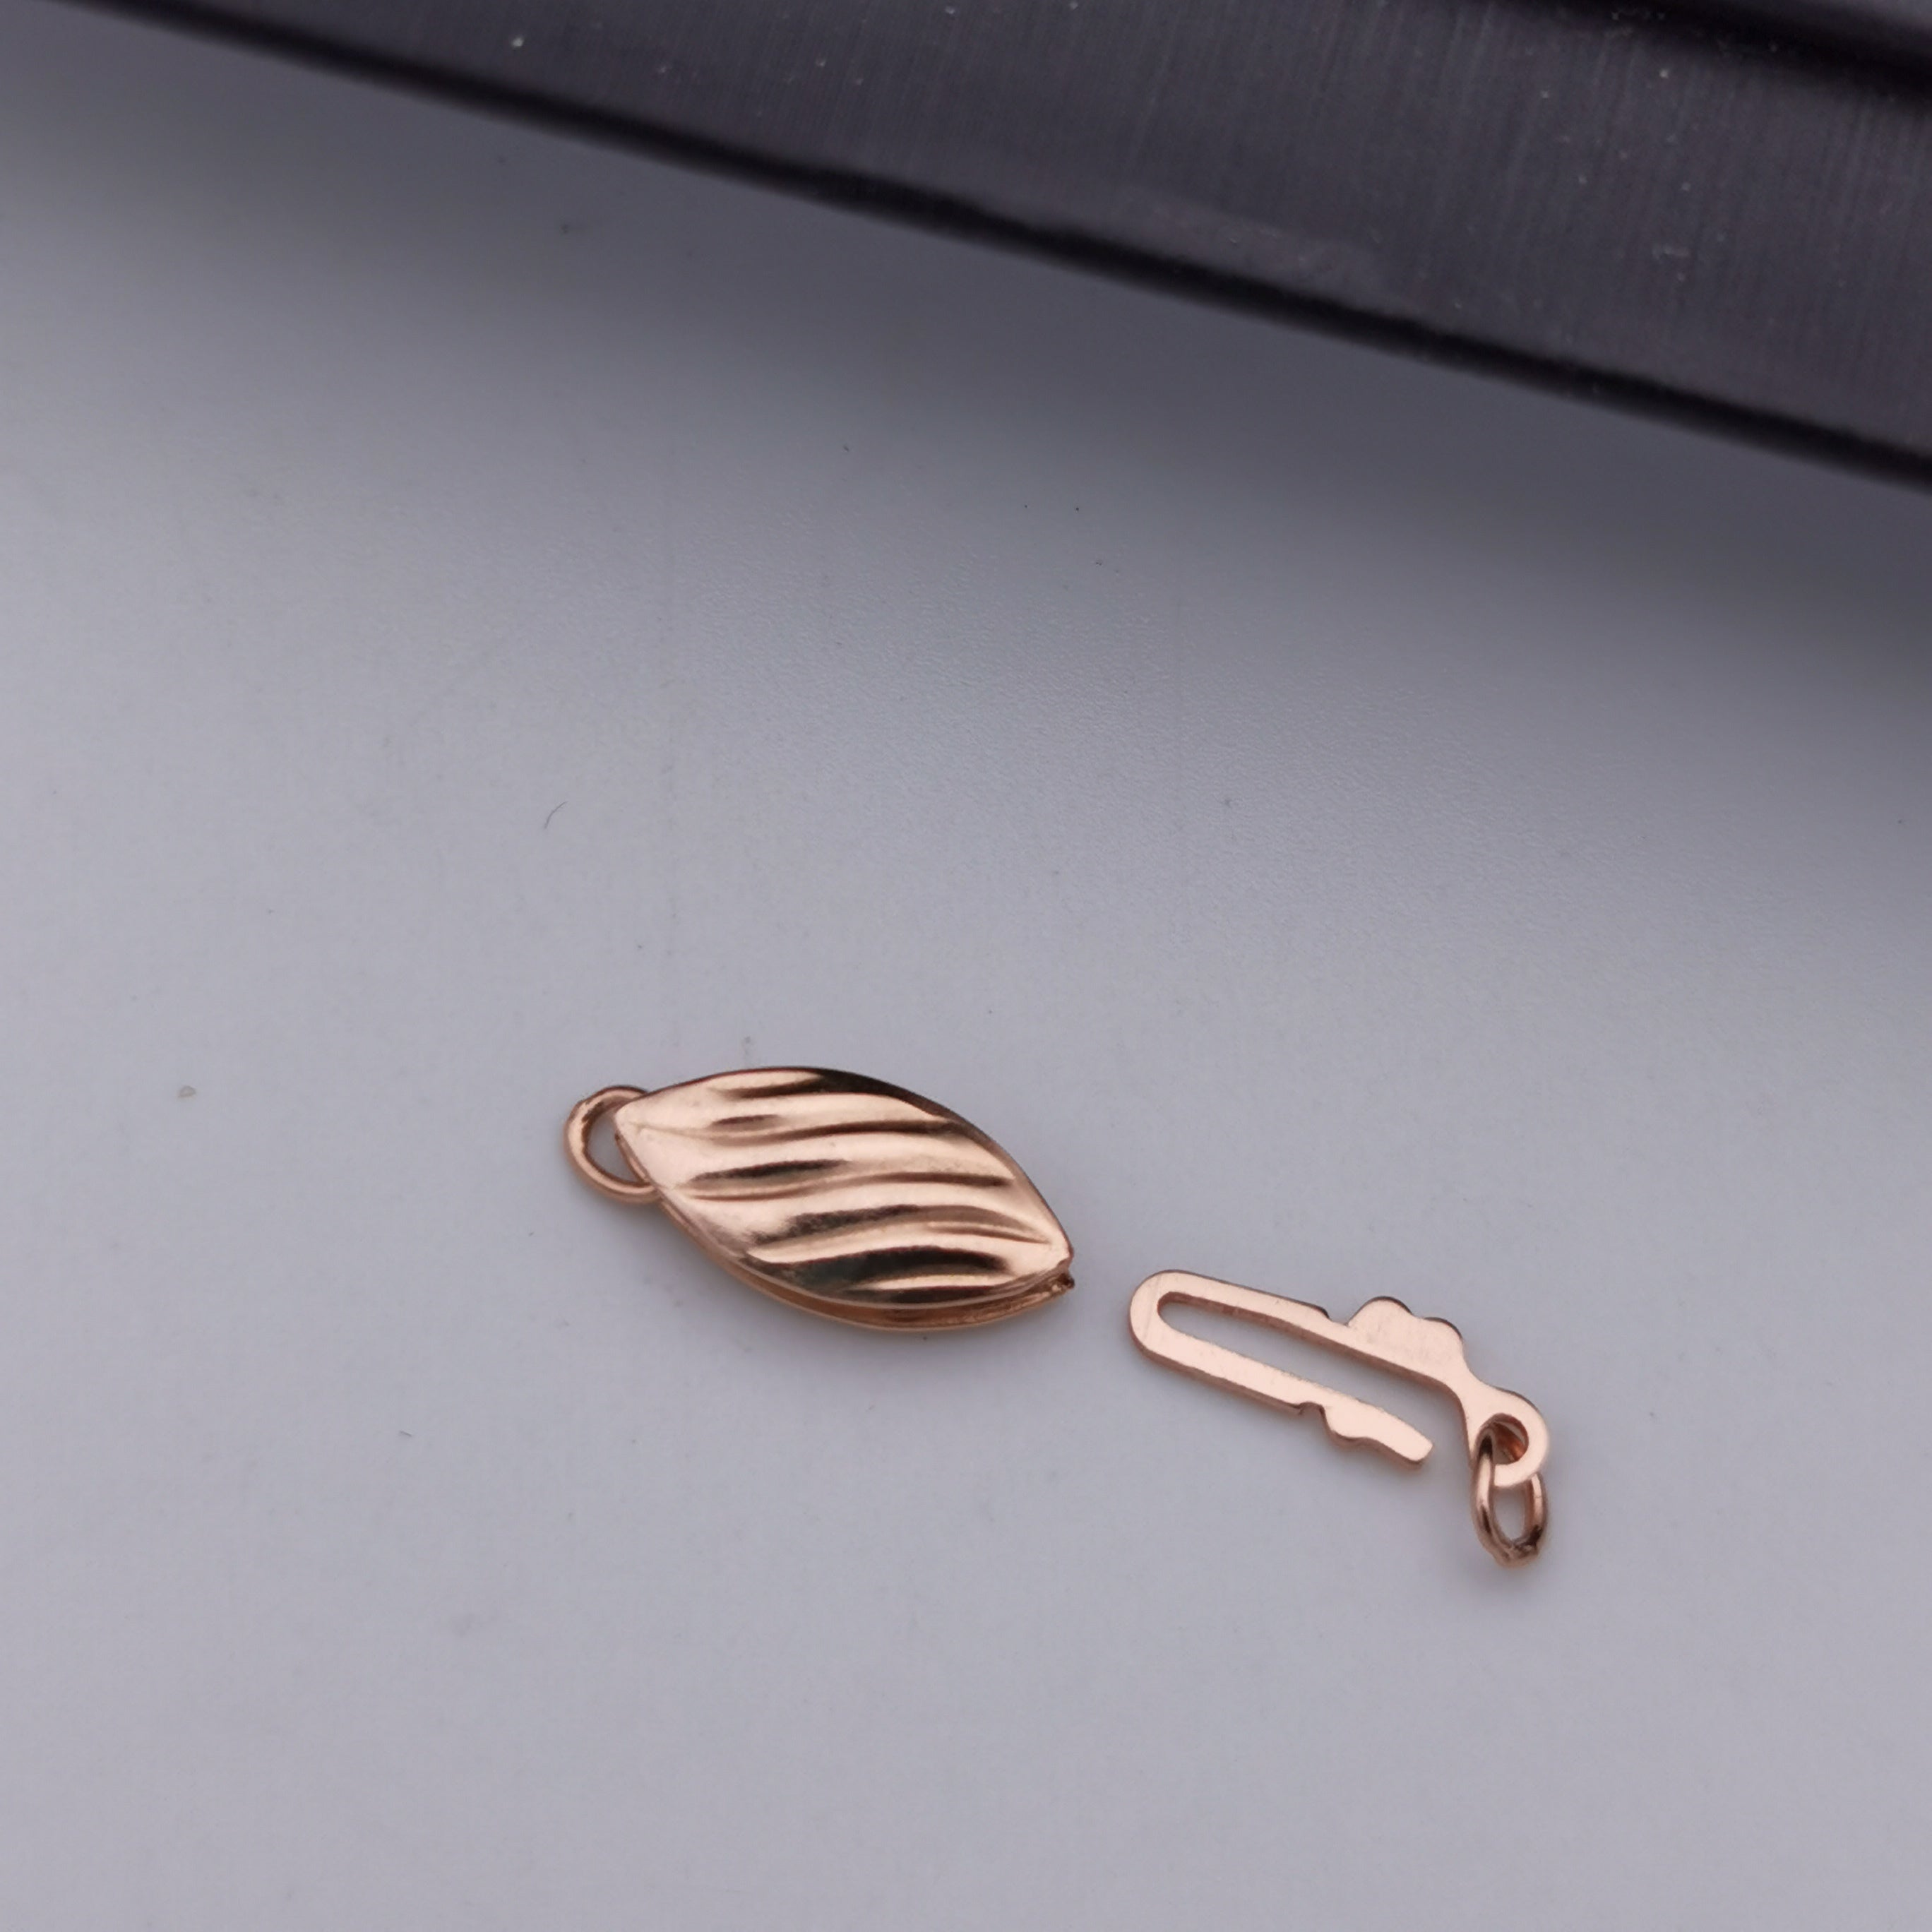 S925 sterling silver Rose gold rhodium plated clasp